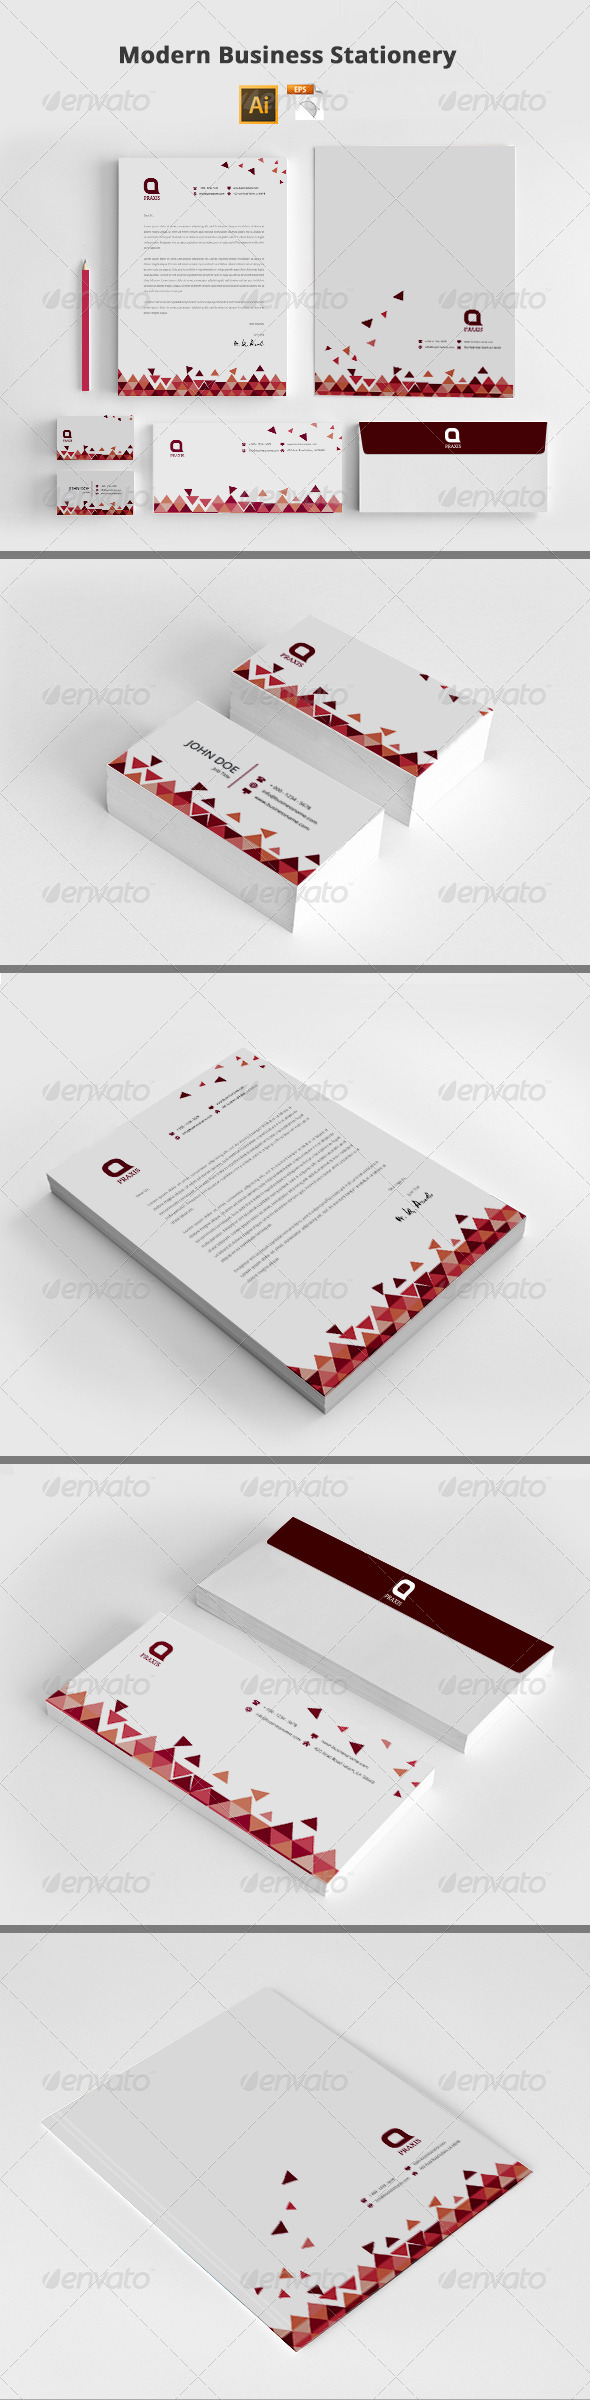 GraphicRiver Modern Business Stationery 8408494